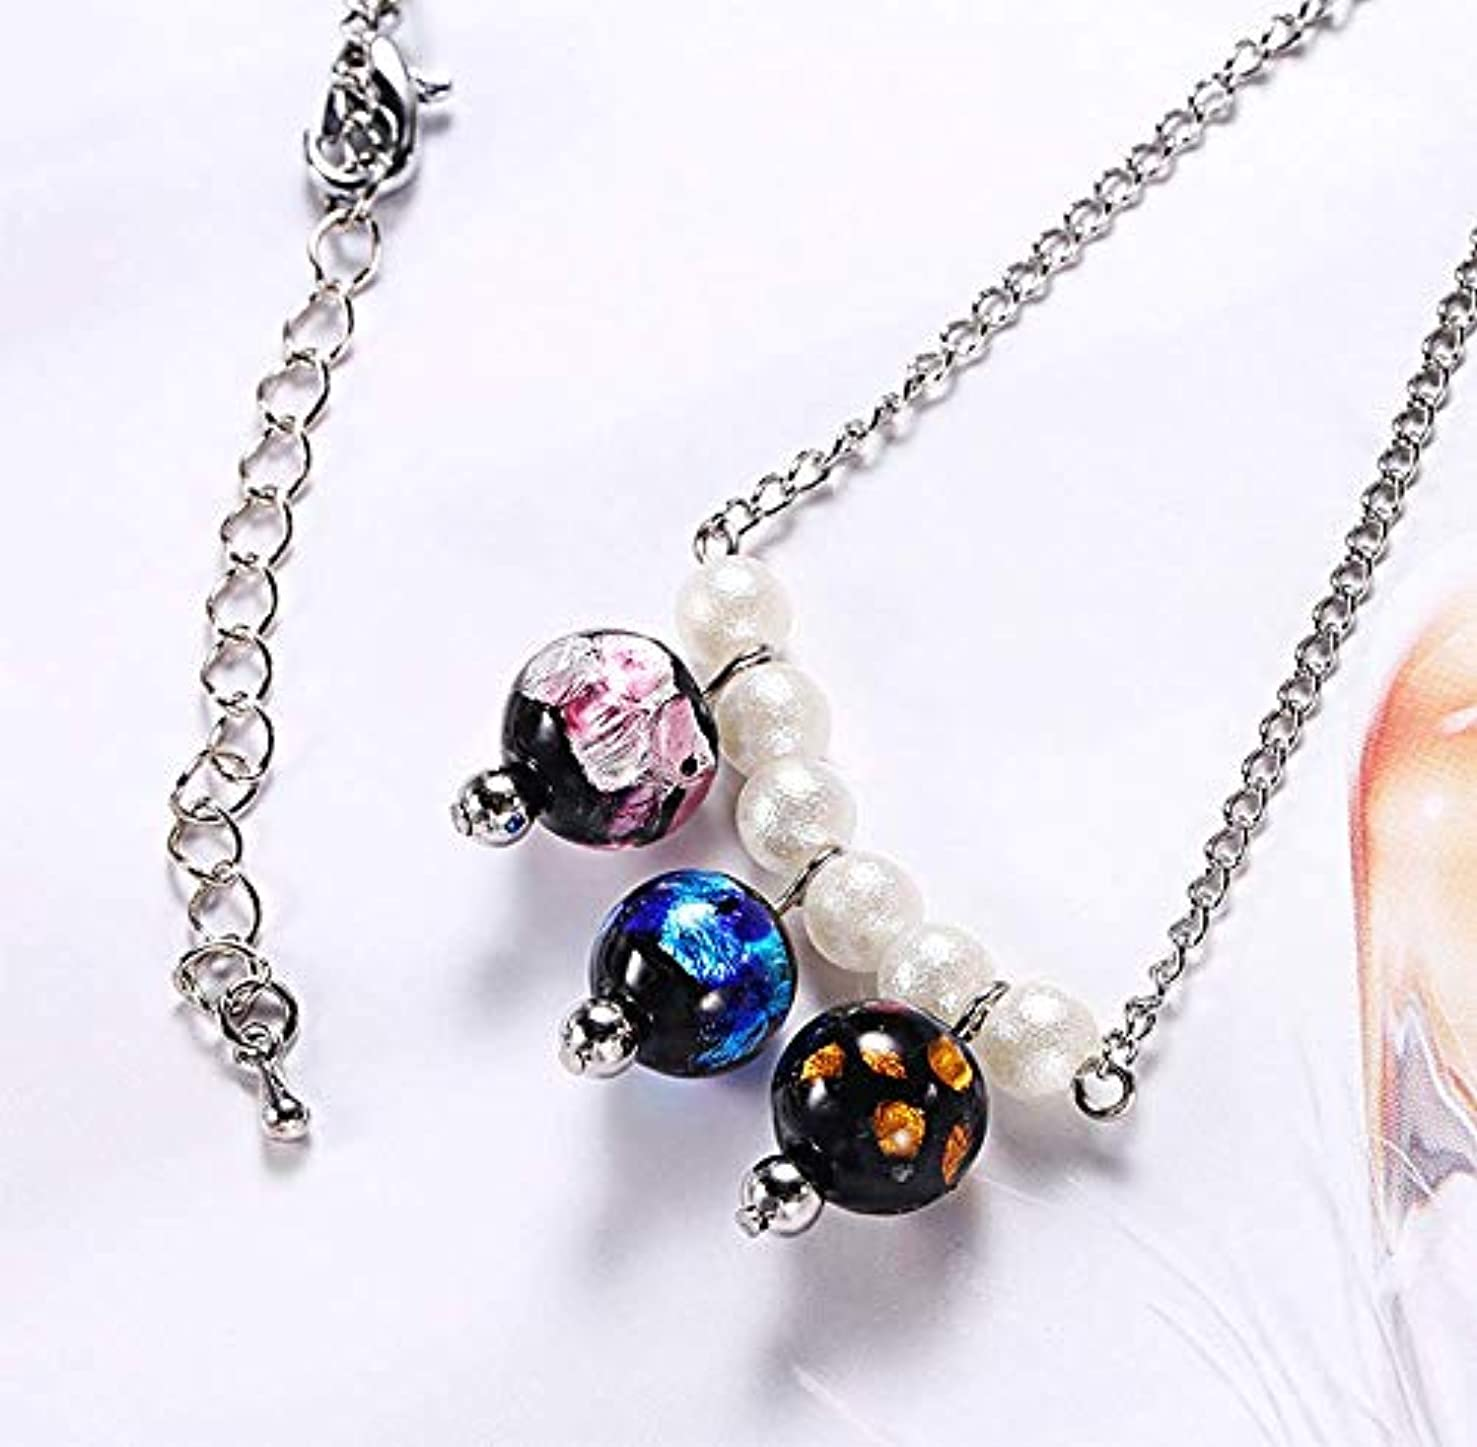 QIANQIAN 6 Pearls Dream Glass Beads Multi-Bead Necklace Pendant Stainless Steel Lobster Buckle Chain Necklace Men Women